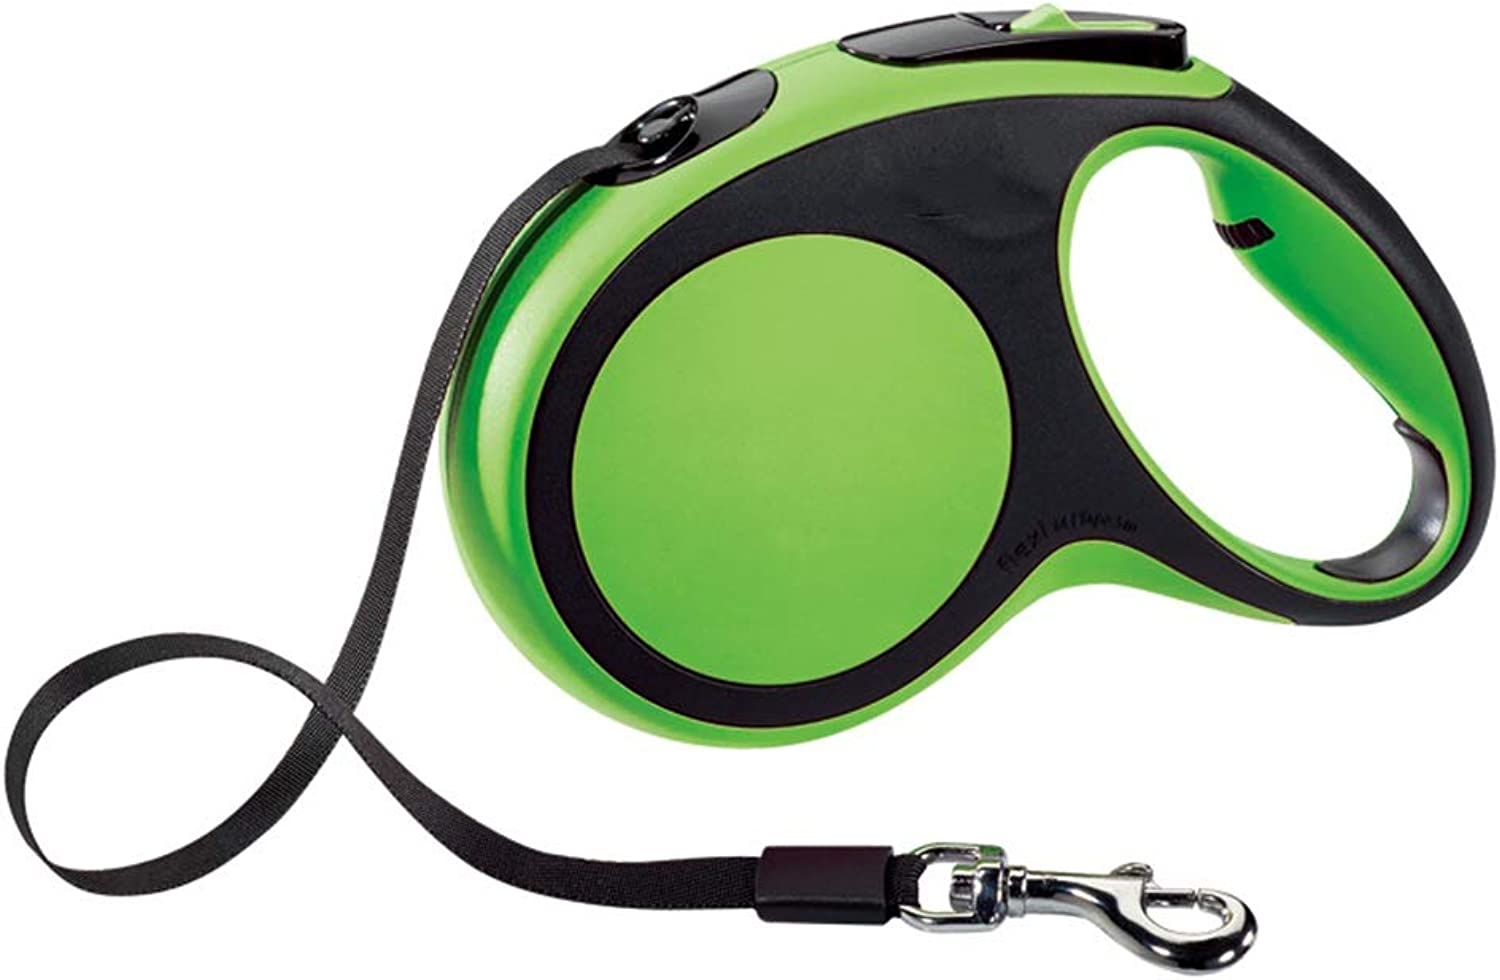 Dog Leash, Retractable Comfort Durable Dog Lead for Large Medium Small Dogs Walking Dog Leash (color   Green, Size   S)